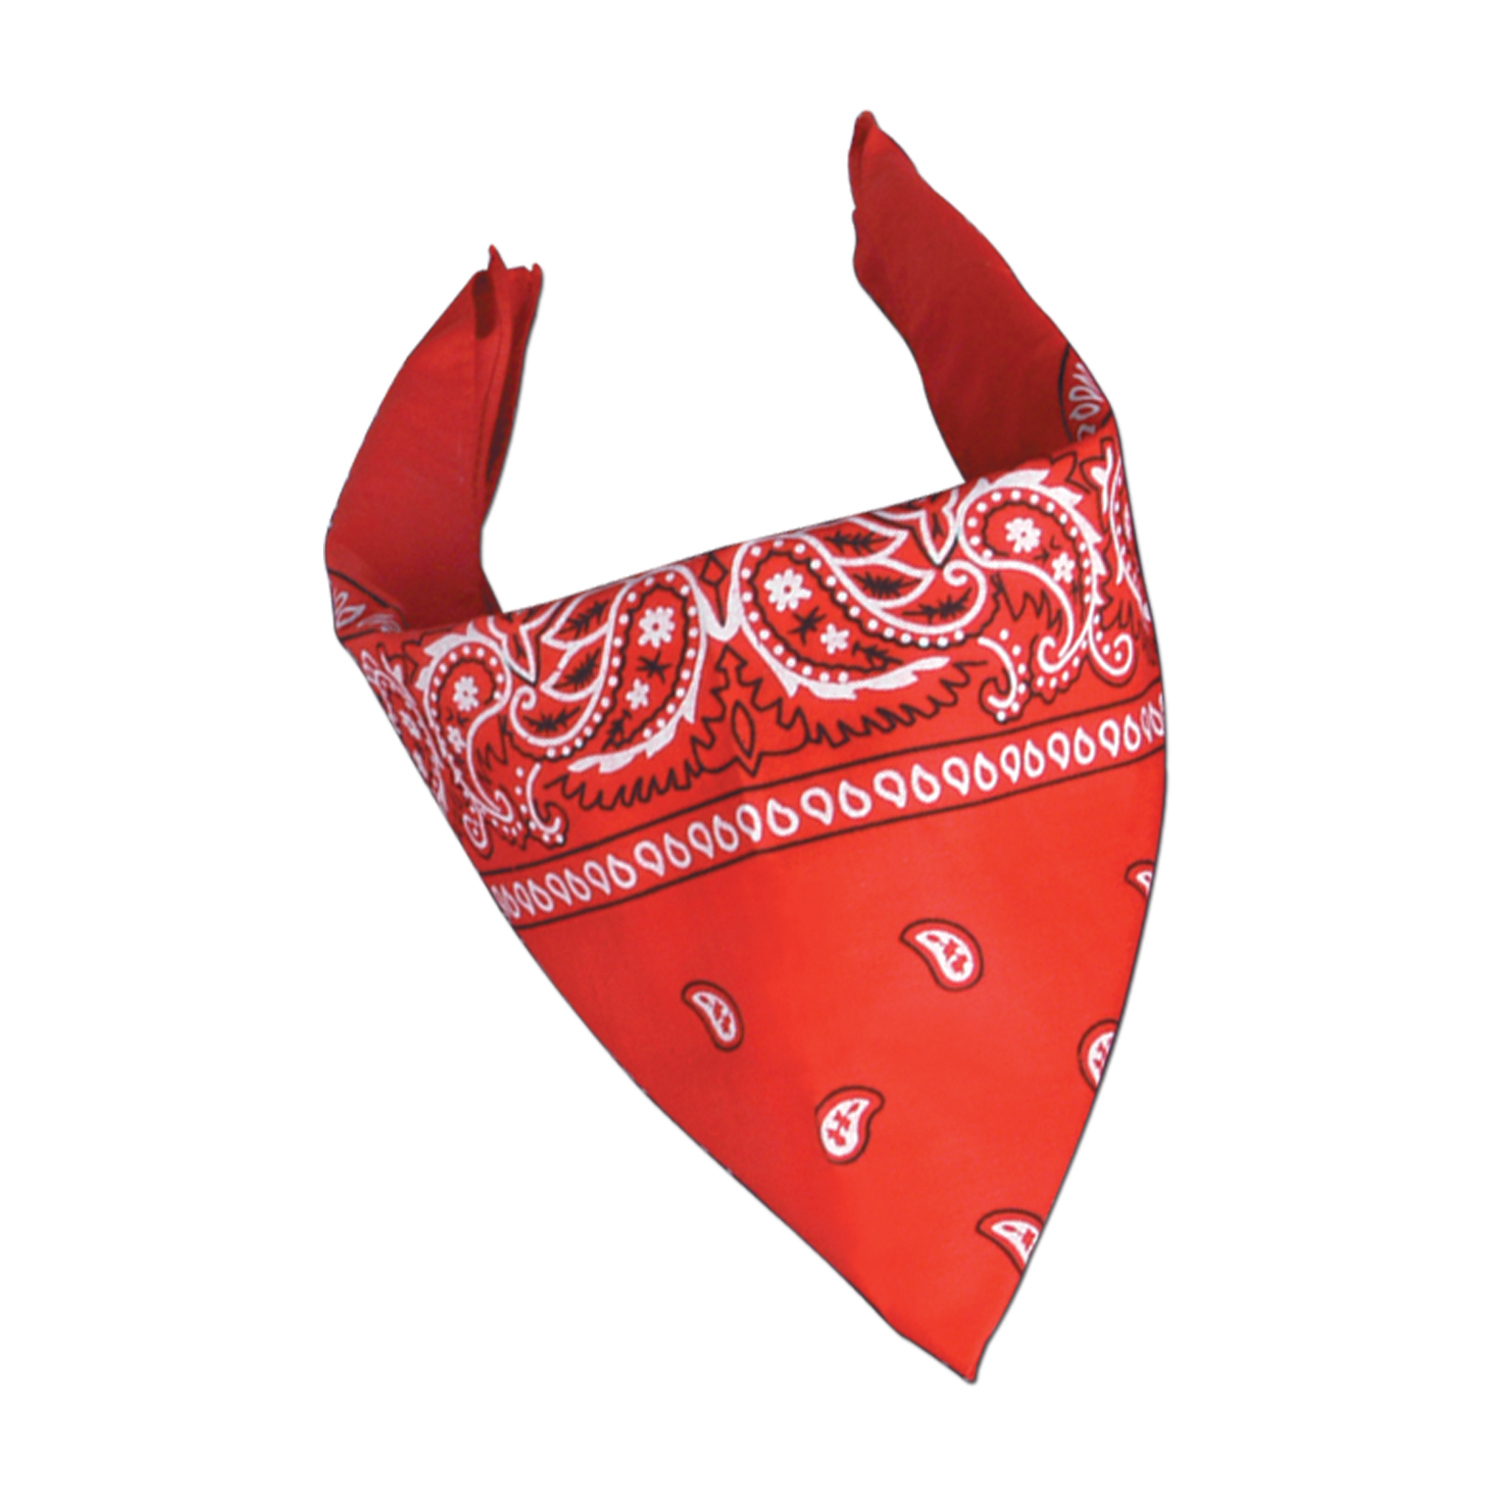 Red Bandana (Pack of 12) bandana, red, western, new years eve, party, decoration, party favor, inexpensive, wholesale, bulk